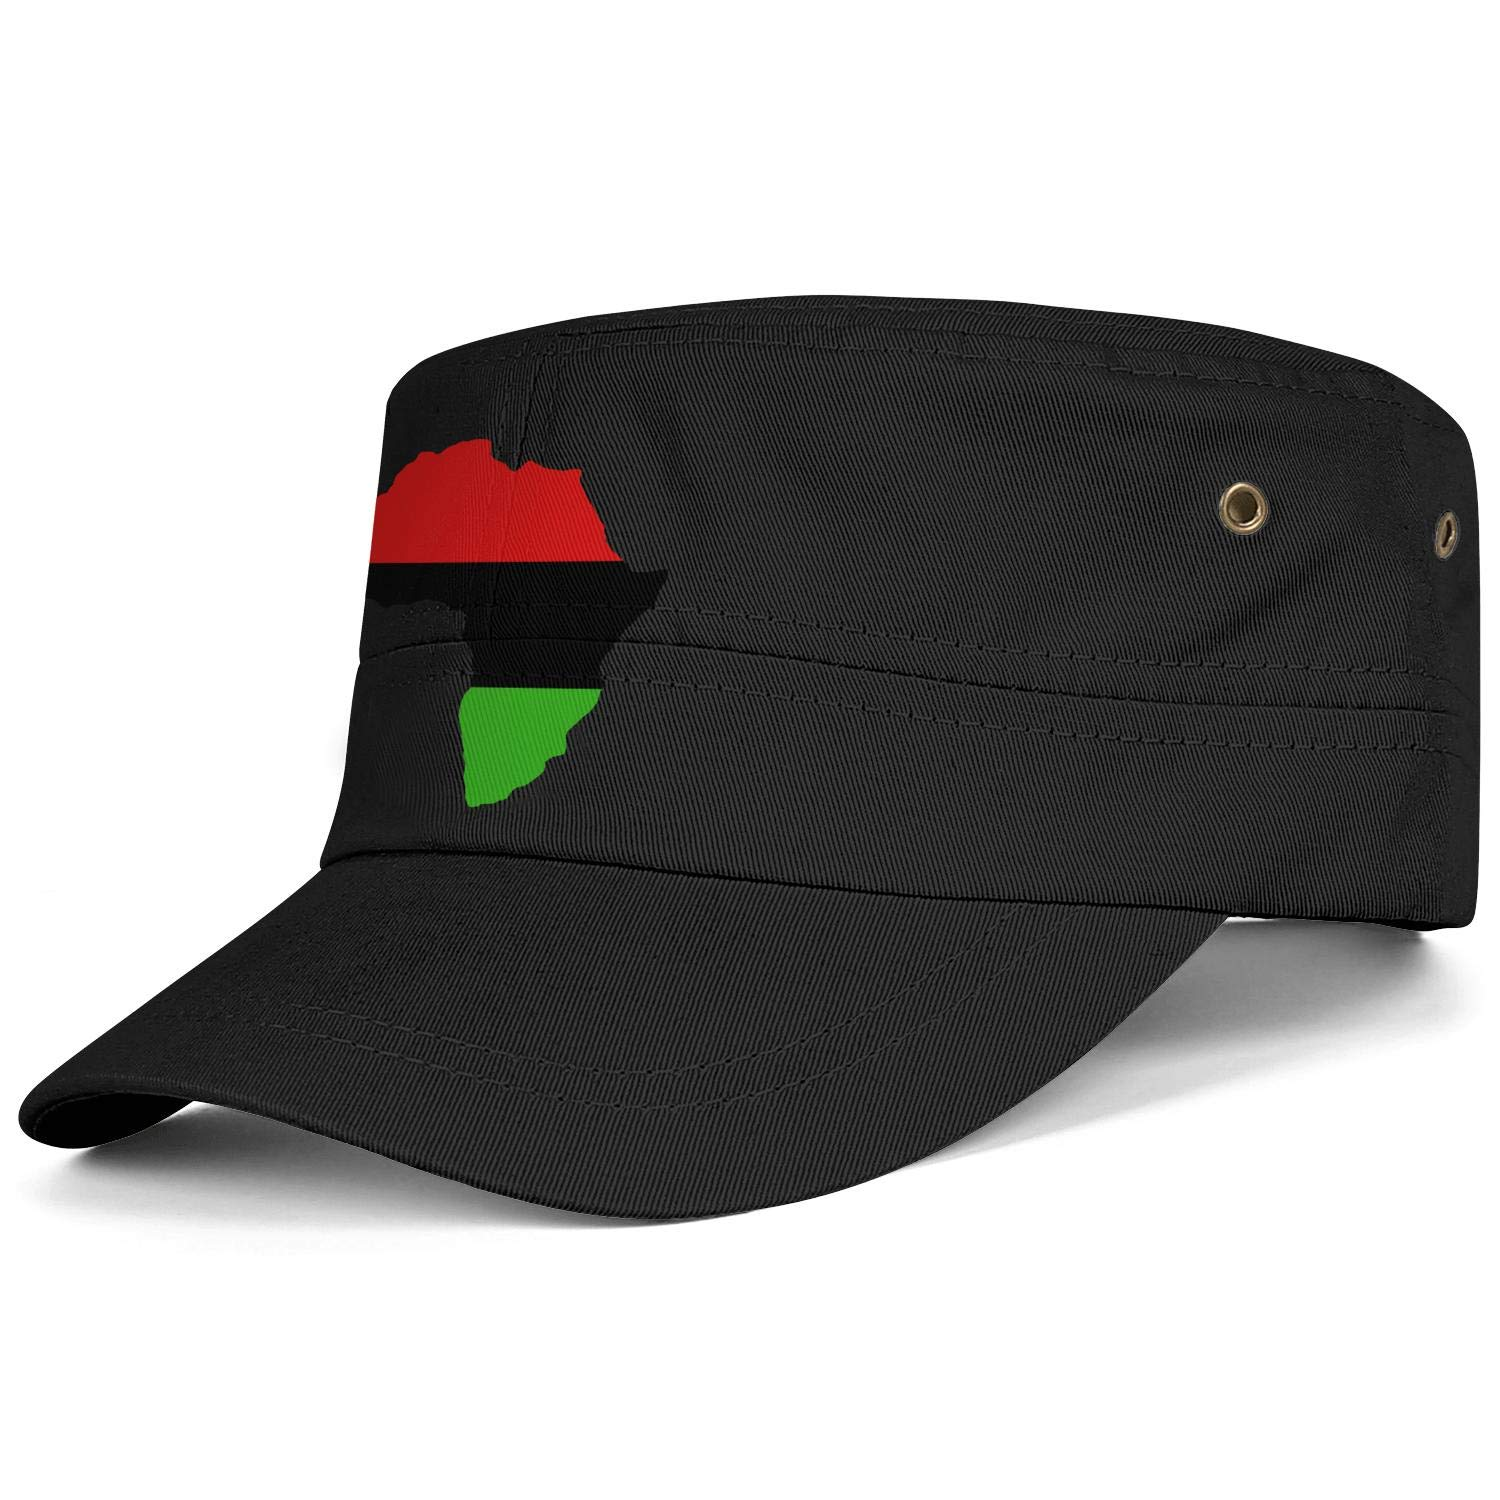 Unisex Military Hat Pride Parade Gay Lesbian Pride Rainbow American USA Flag Vintage Flat Top Cadet Army Caps